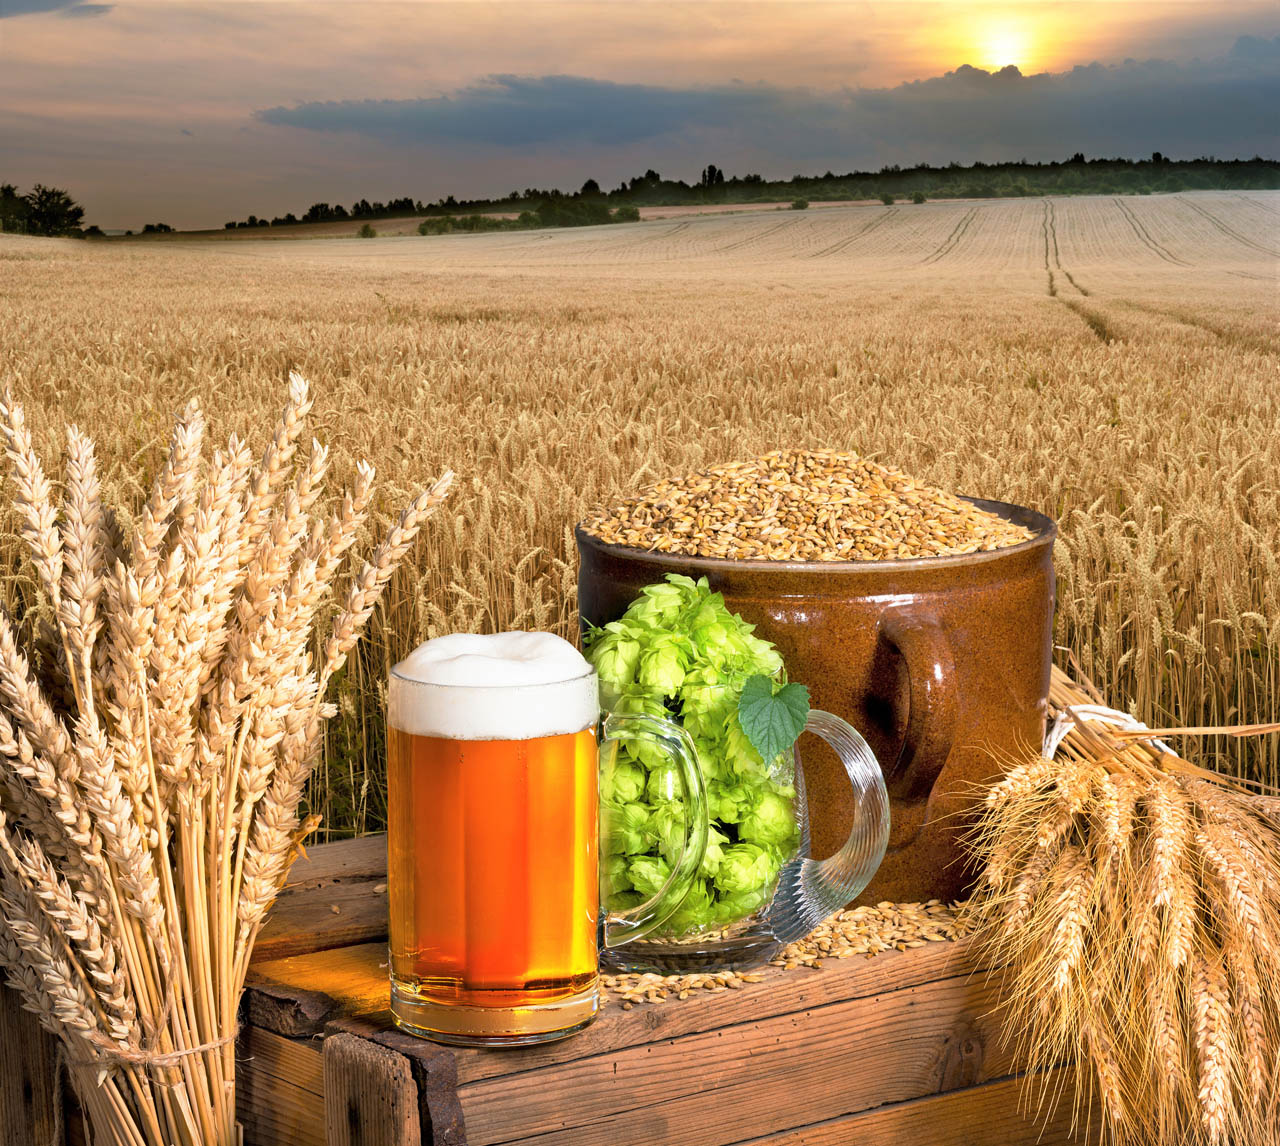 Beer ingredients dakota brewery beer pub best craft draft beer argyroupoli elliniko region - 4